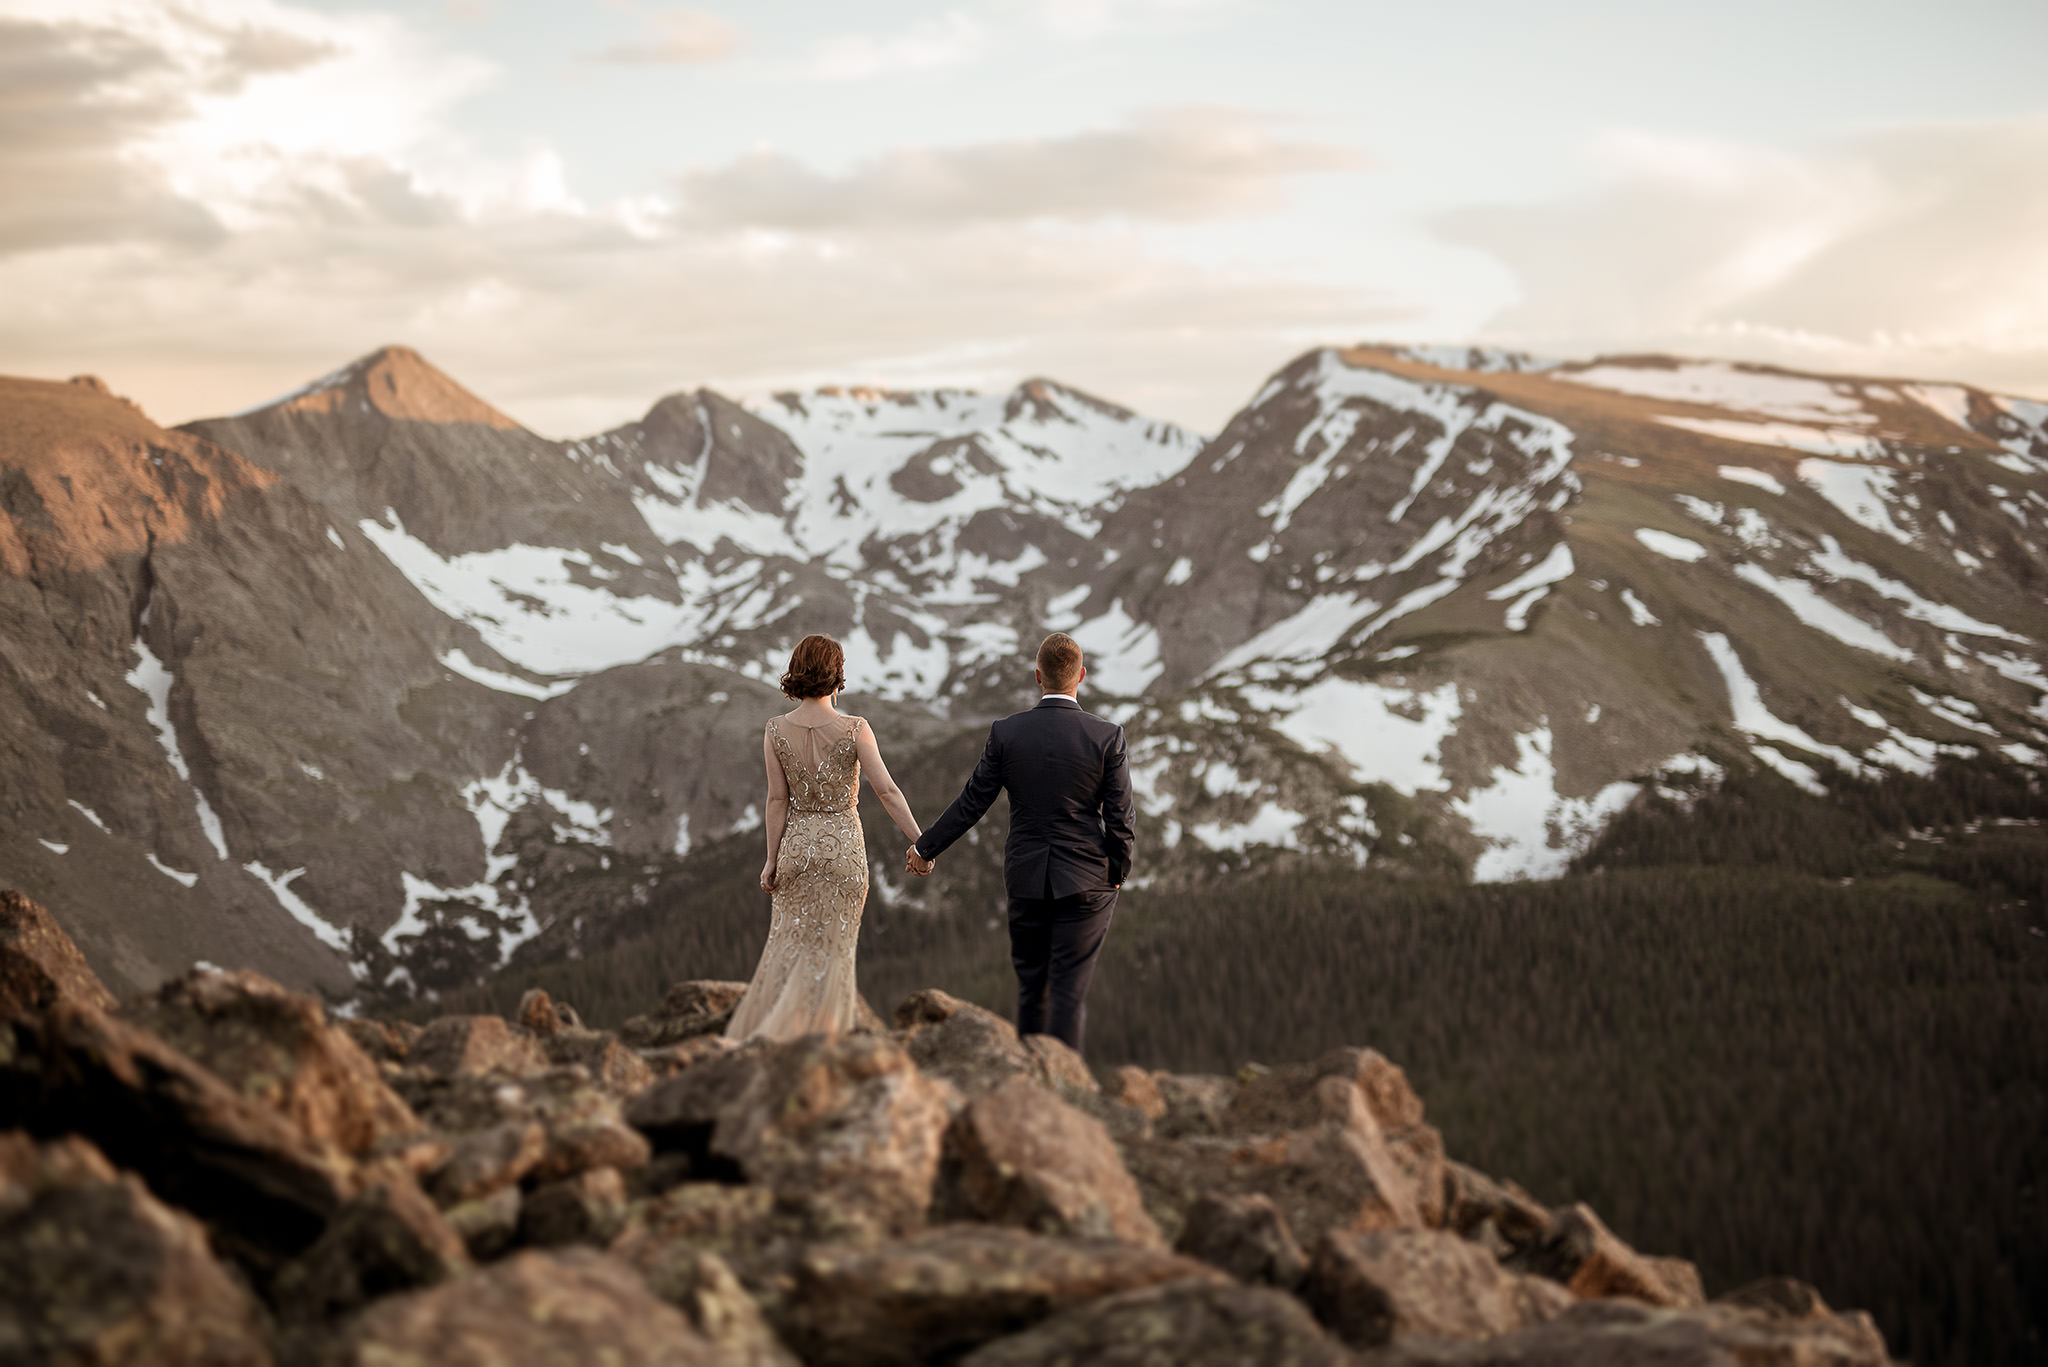 Rocky-Mountain-National-park-elopement-engagement-photography-kate-nick-044.jpg